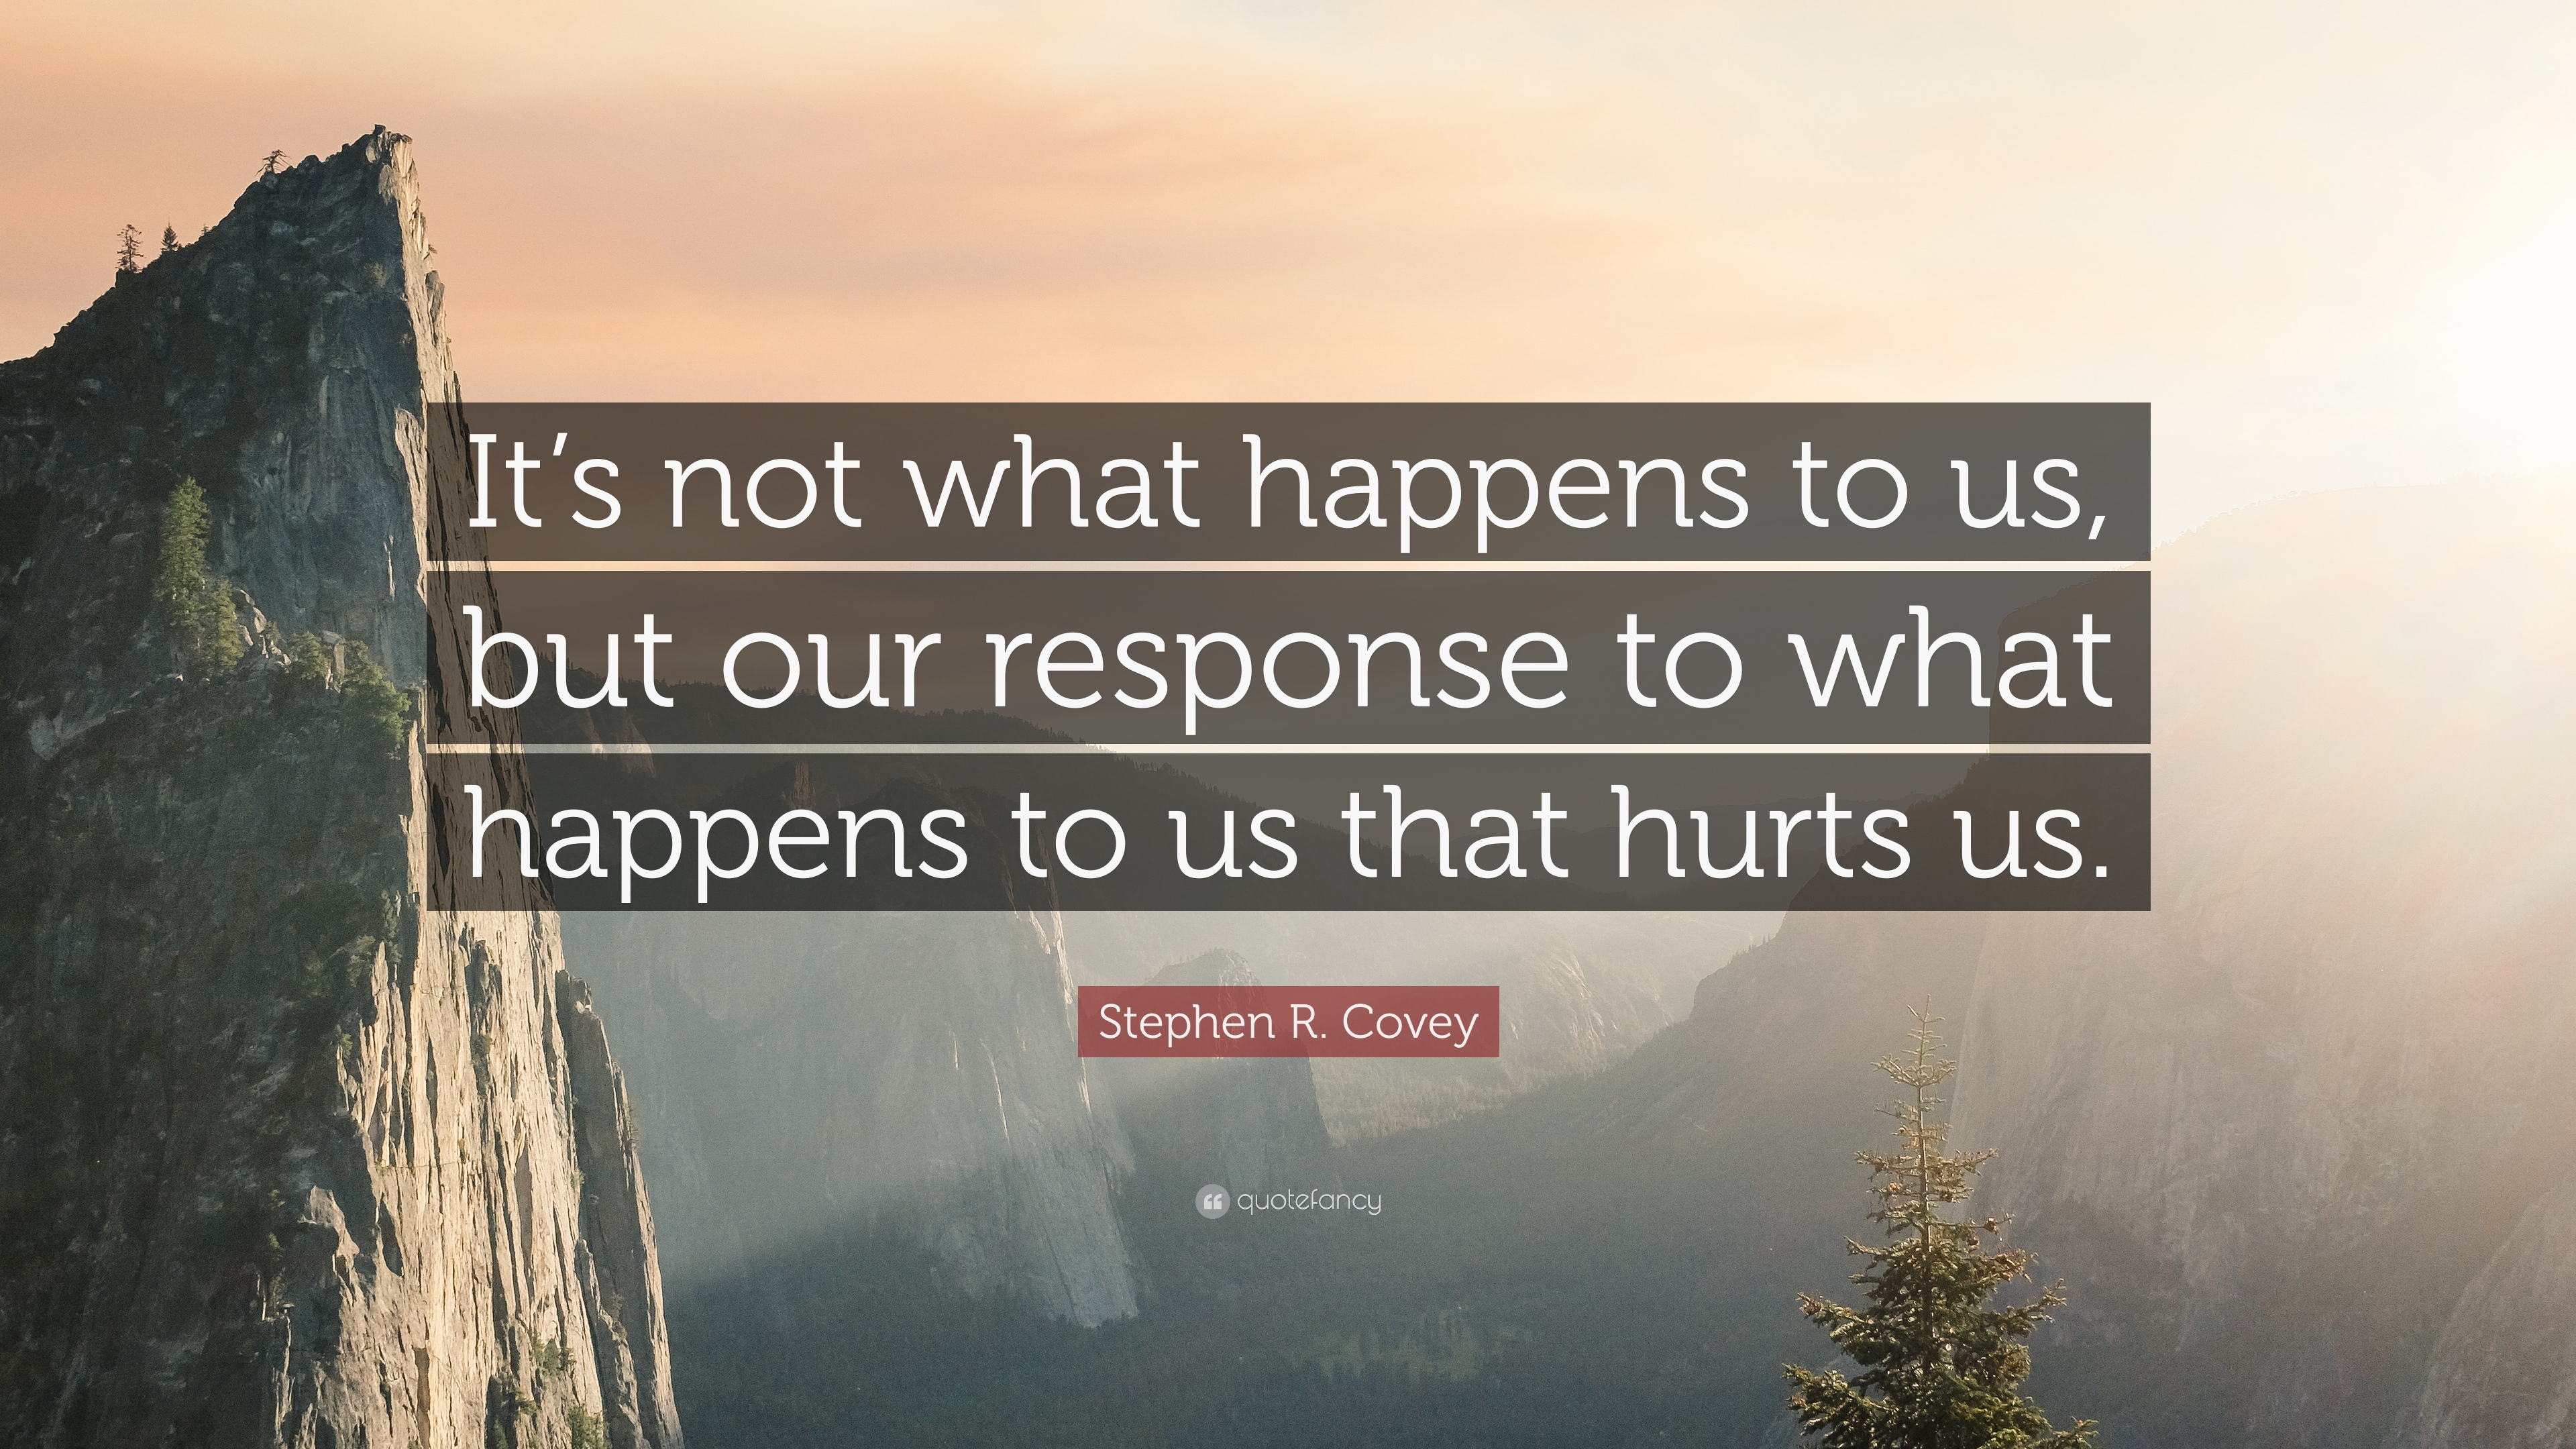 Stephen R Covey Quote Its Not What Happens To Us But Our